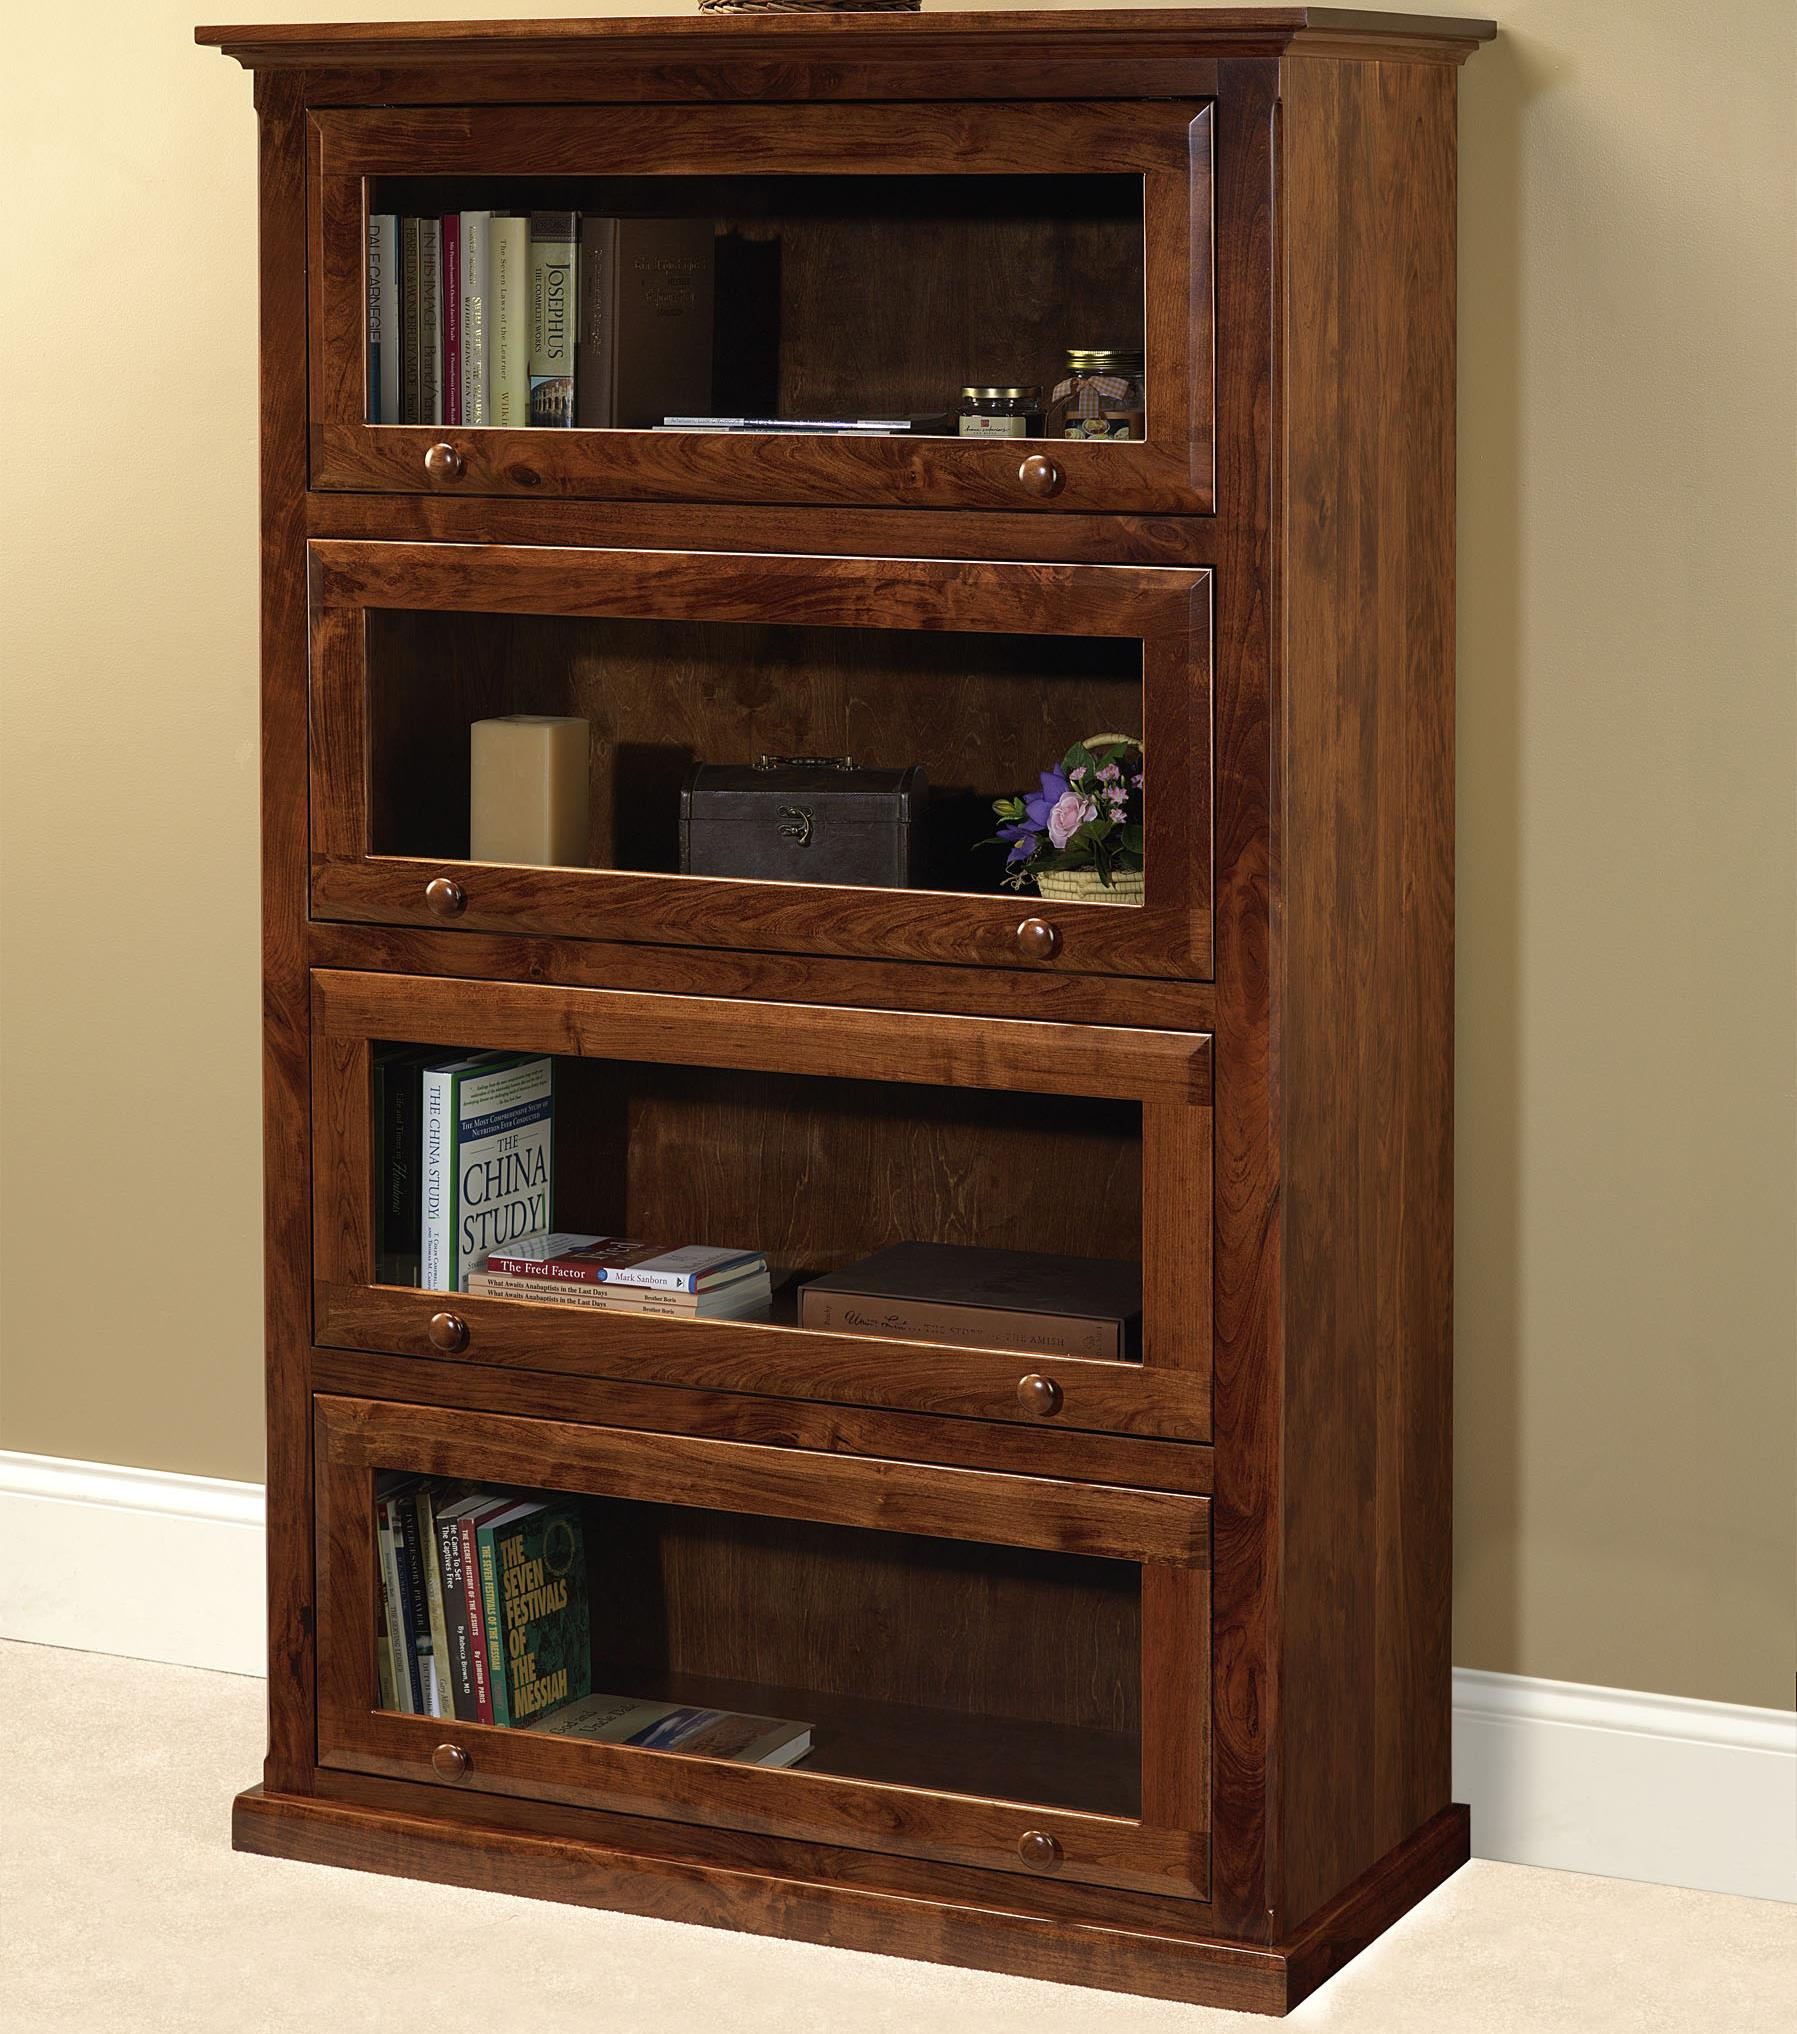 Wonder Wood Bookcases Customizable Barrister Bookcase by Wonder Wood at Saugerties Furniture Mart